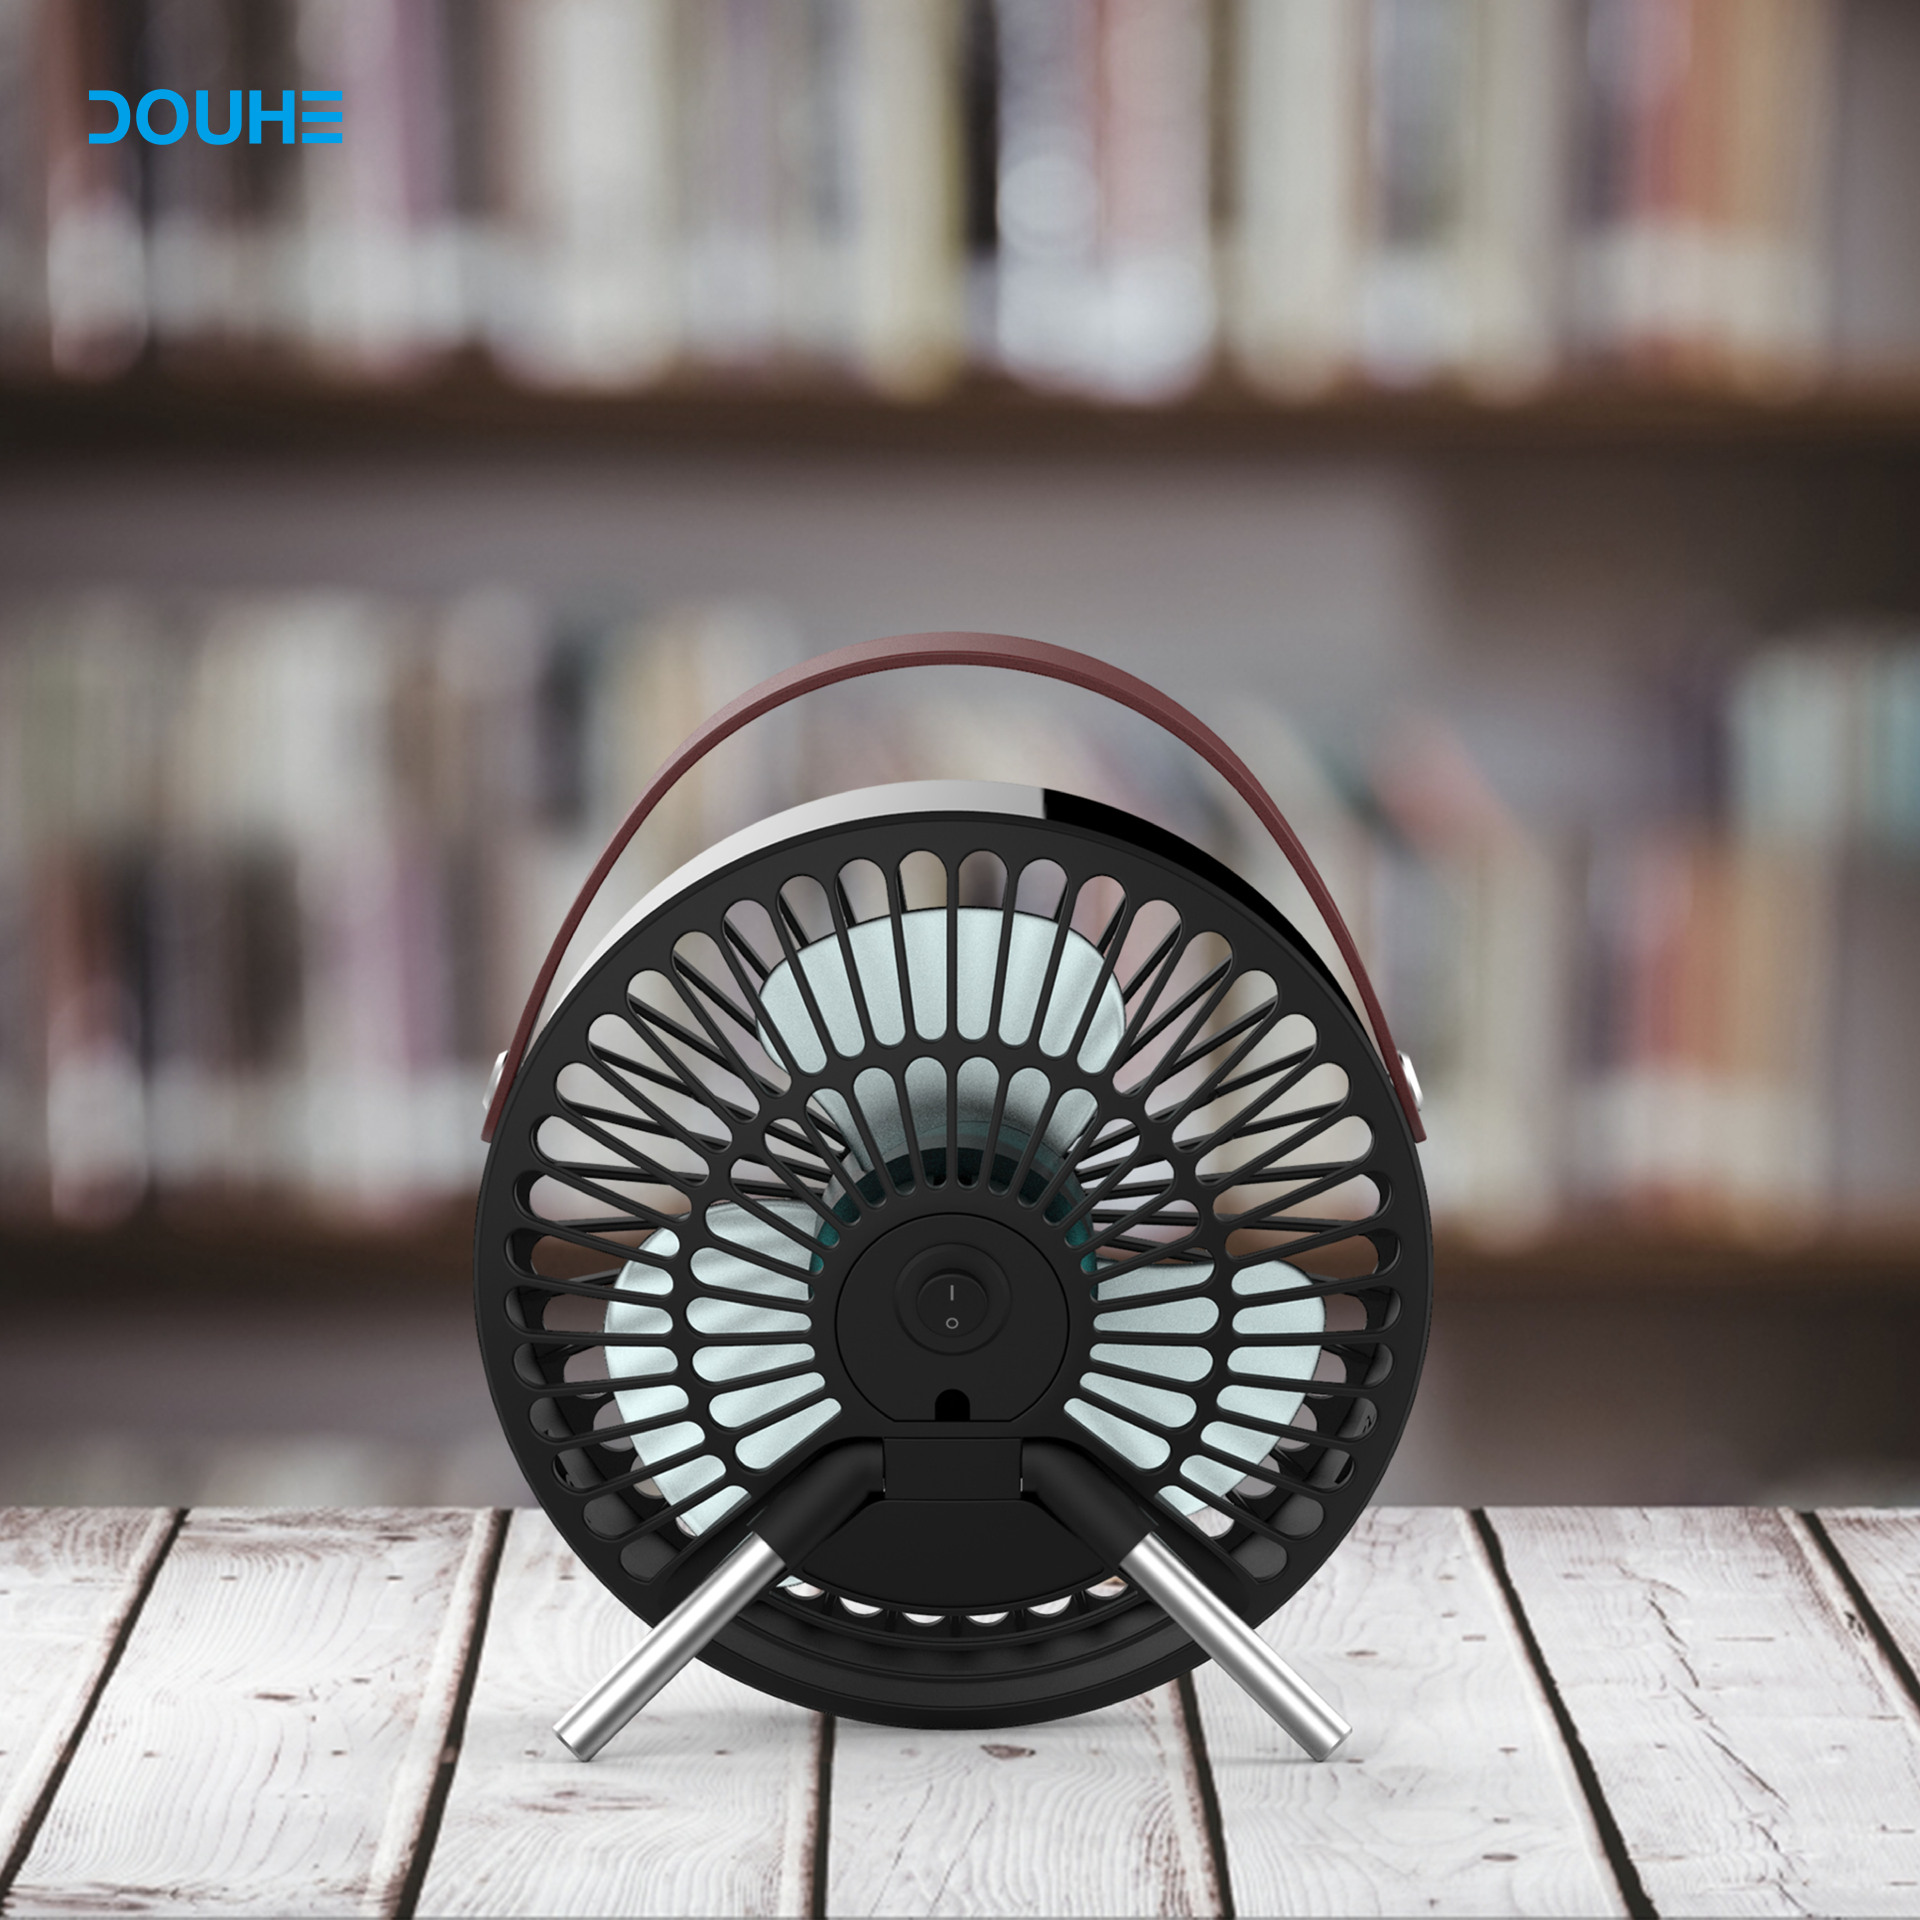 USB Desk Fan - Mini Personal Fan Portable Cooling Fan Electr